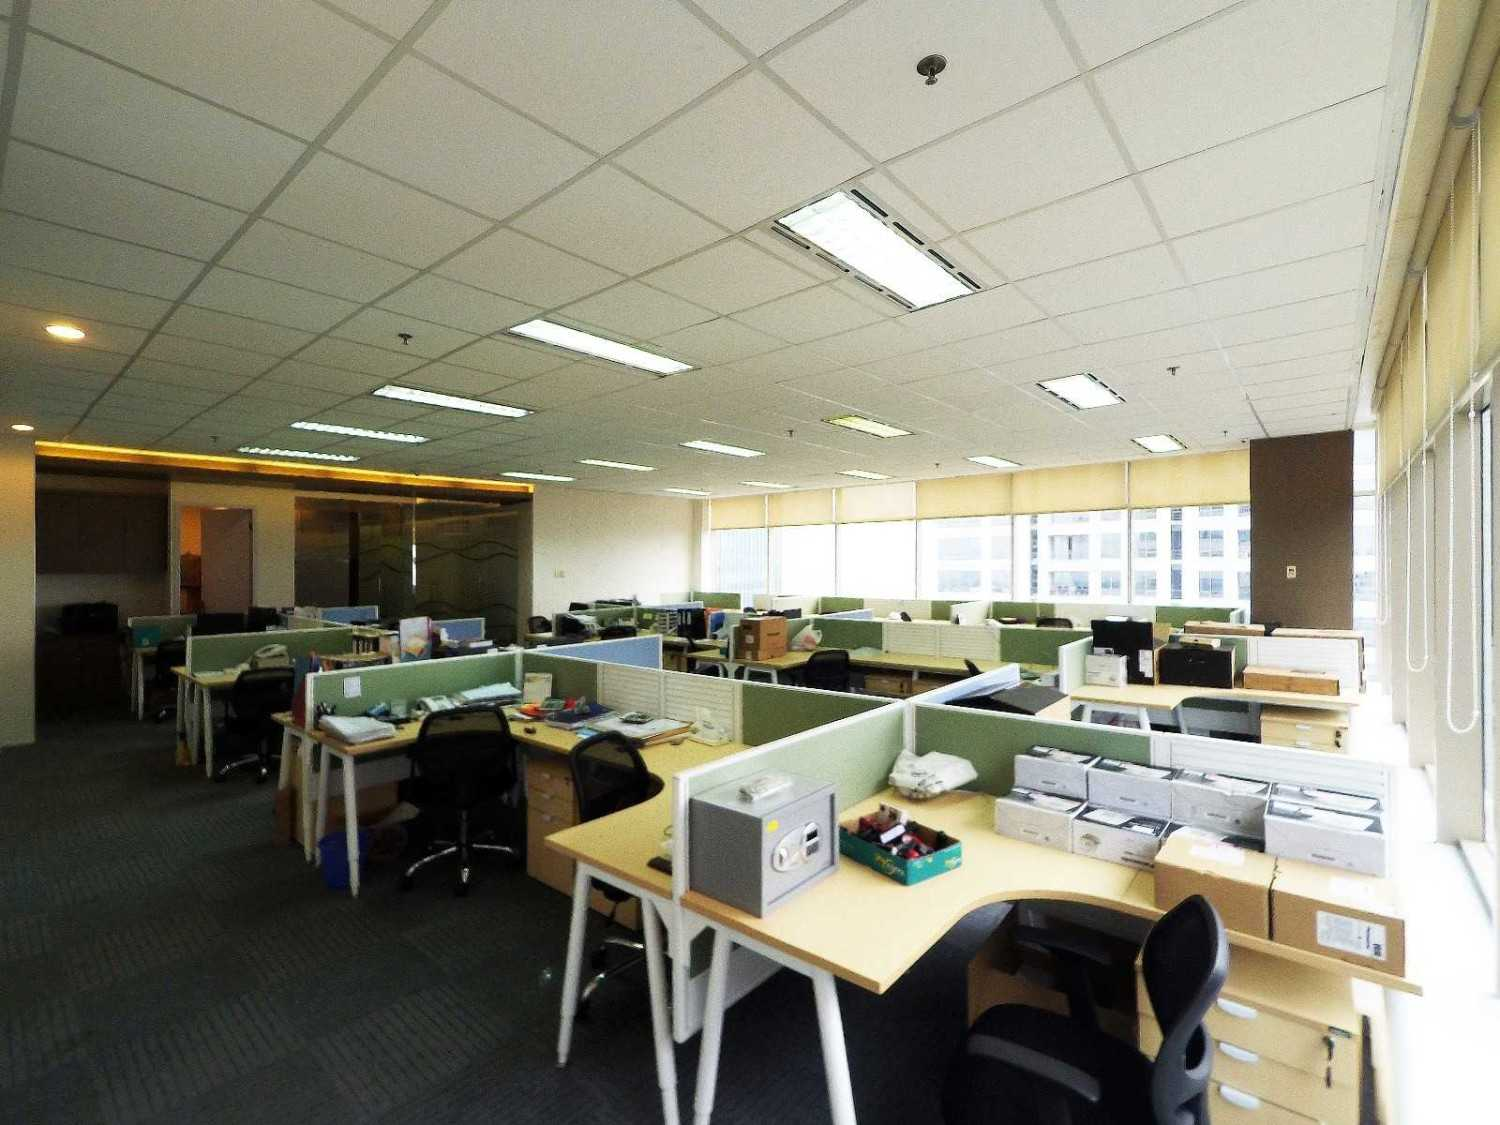 Arkadia Works Sekar Bumi Office Renovation Plaza Asia 21St Floor Plaza Asia 21St Floor Staff Area  14085